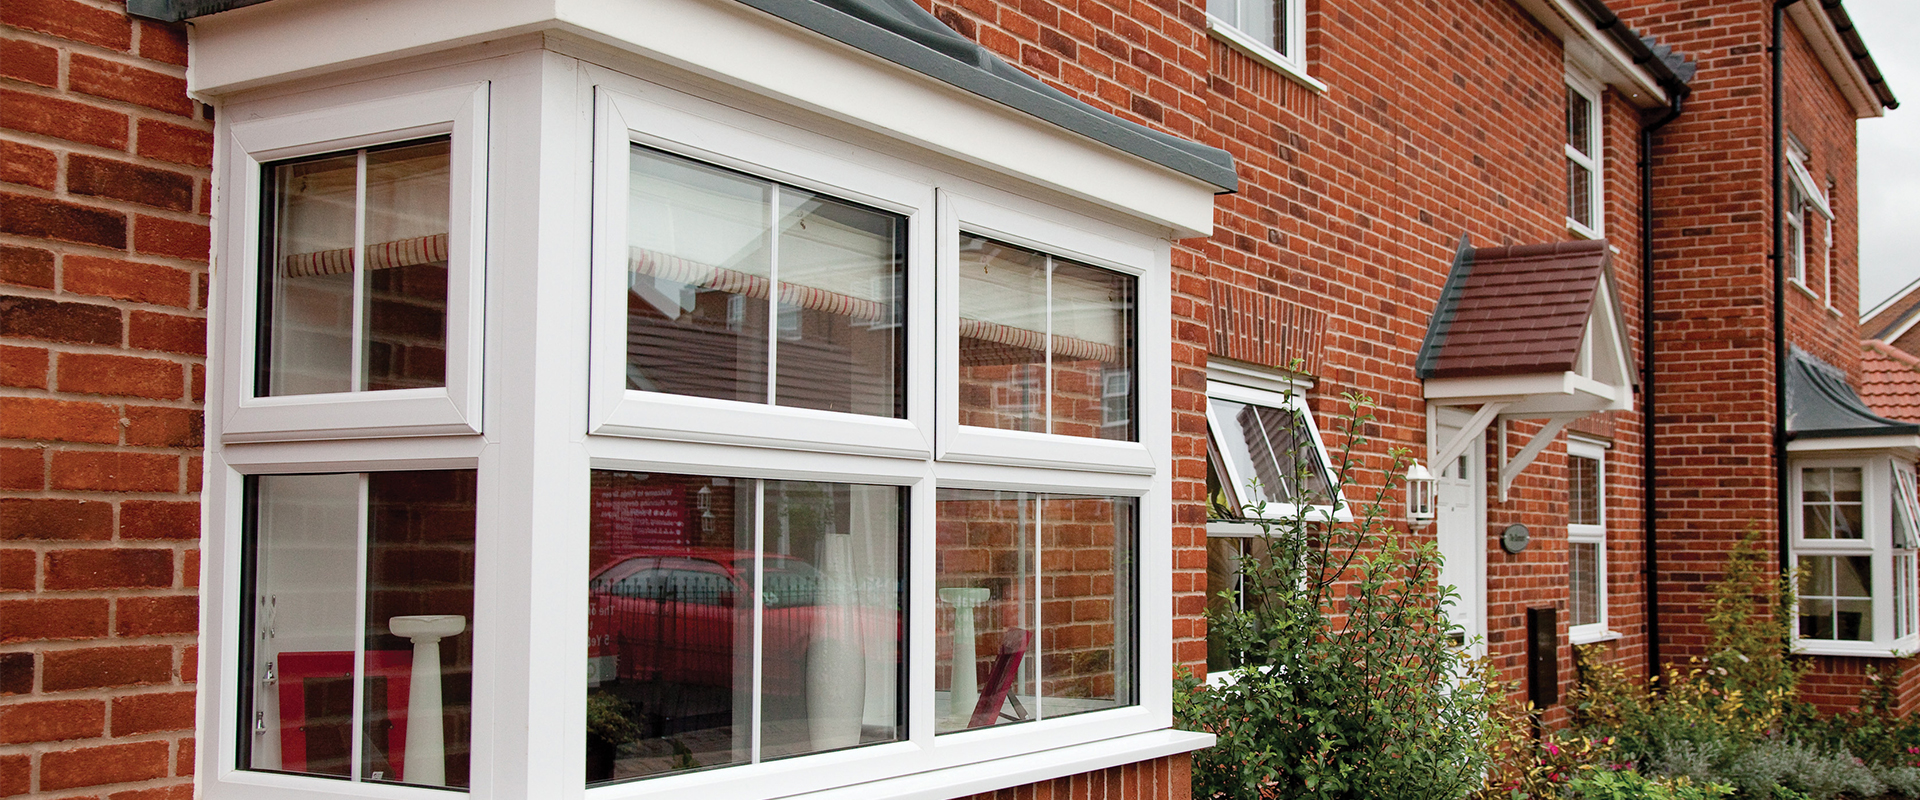 bow and bay windows hayes bow and bay windows prices add a greater impression of space when you buy bow or bay windows